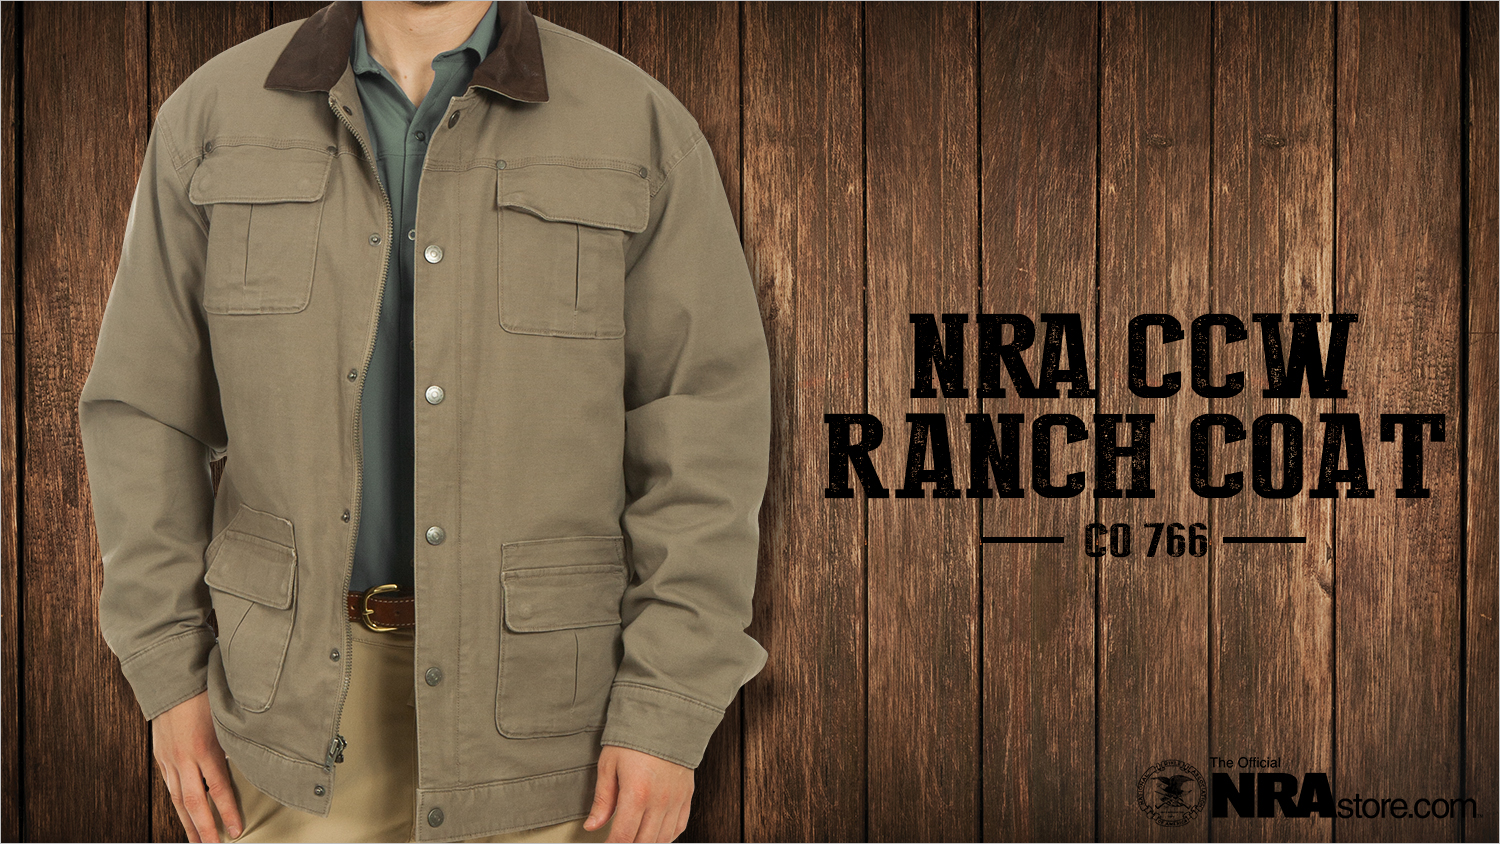 The NRAstore Just Rolled Out One Tough CCW Ranch Coat